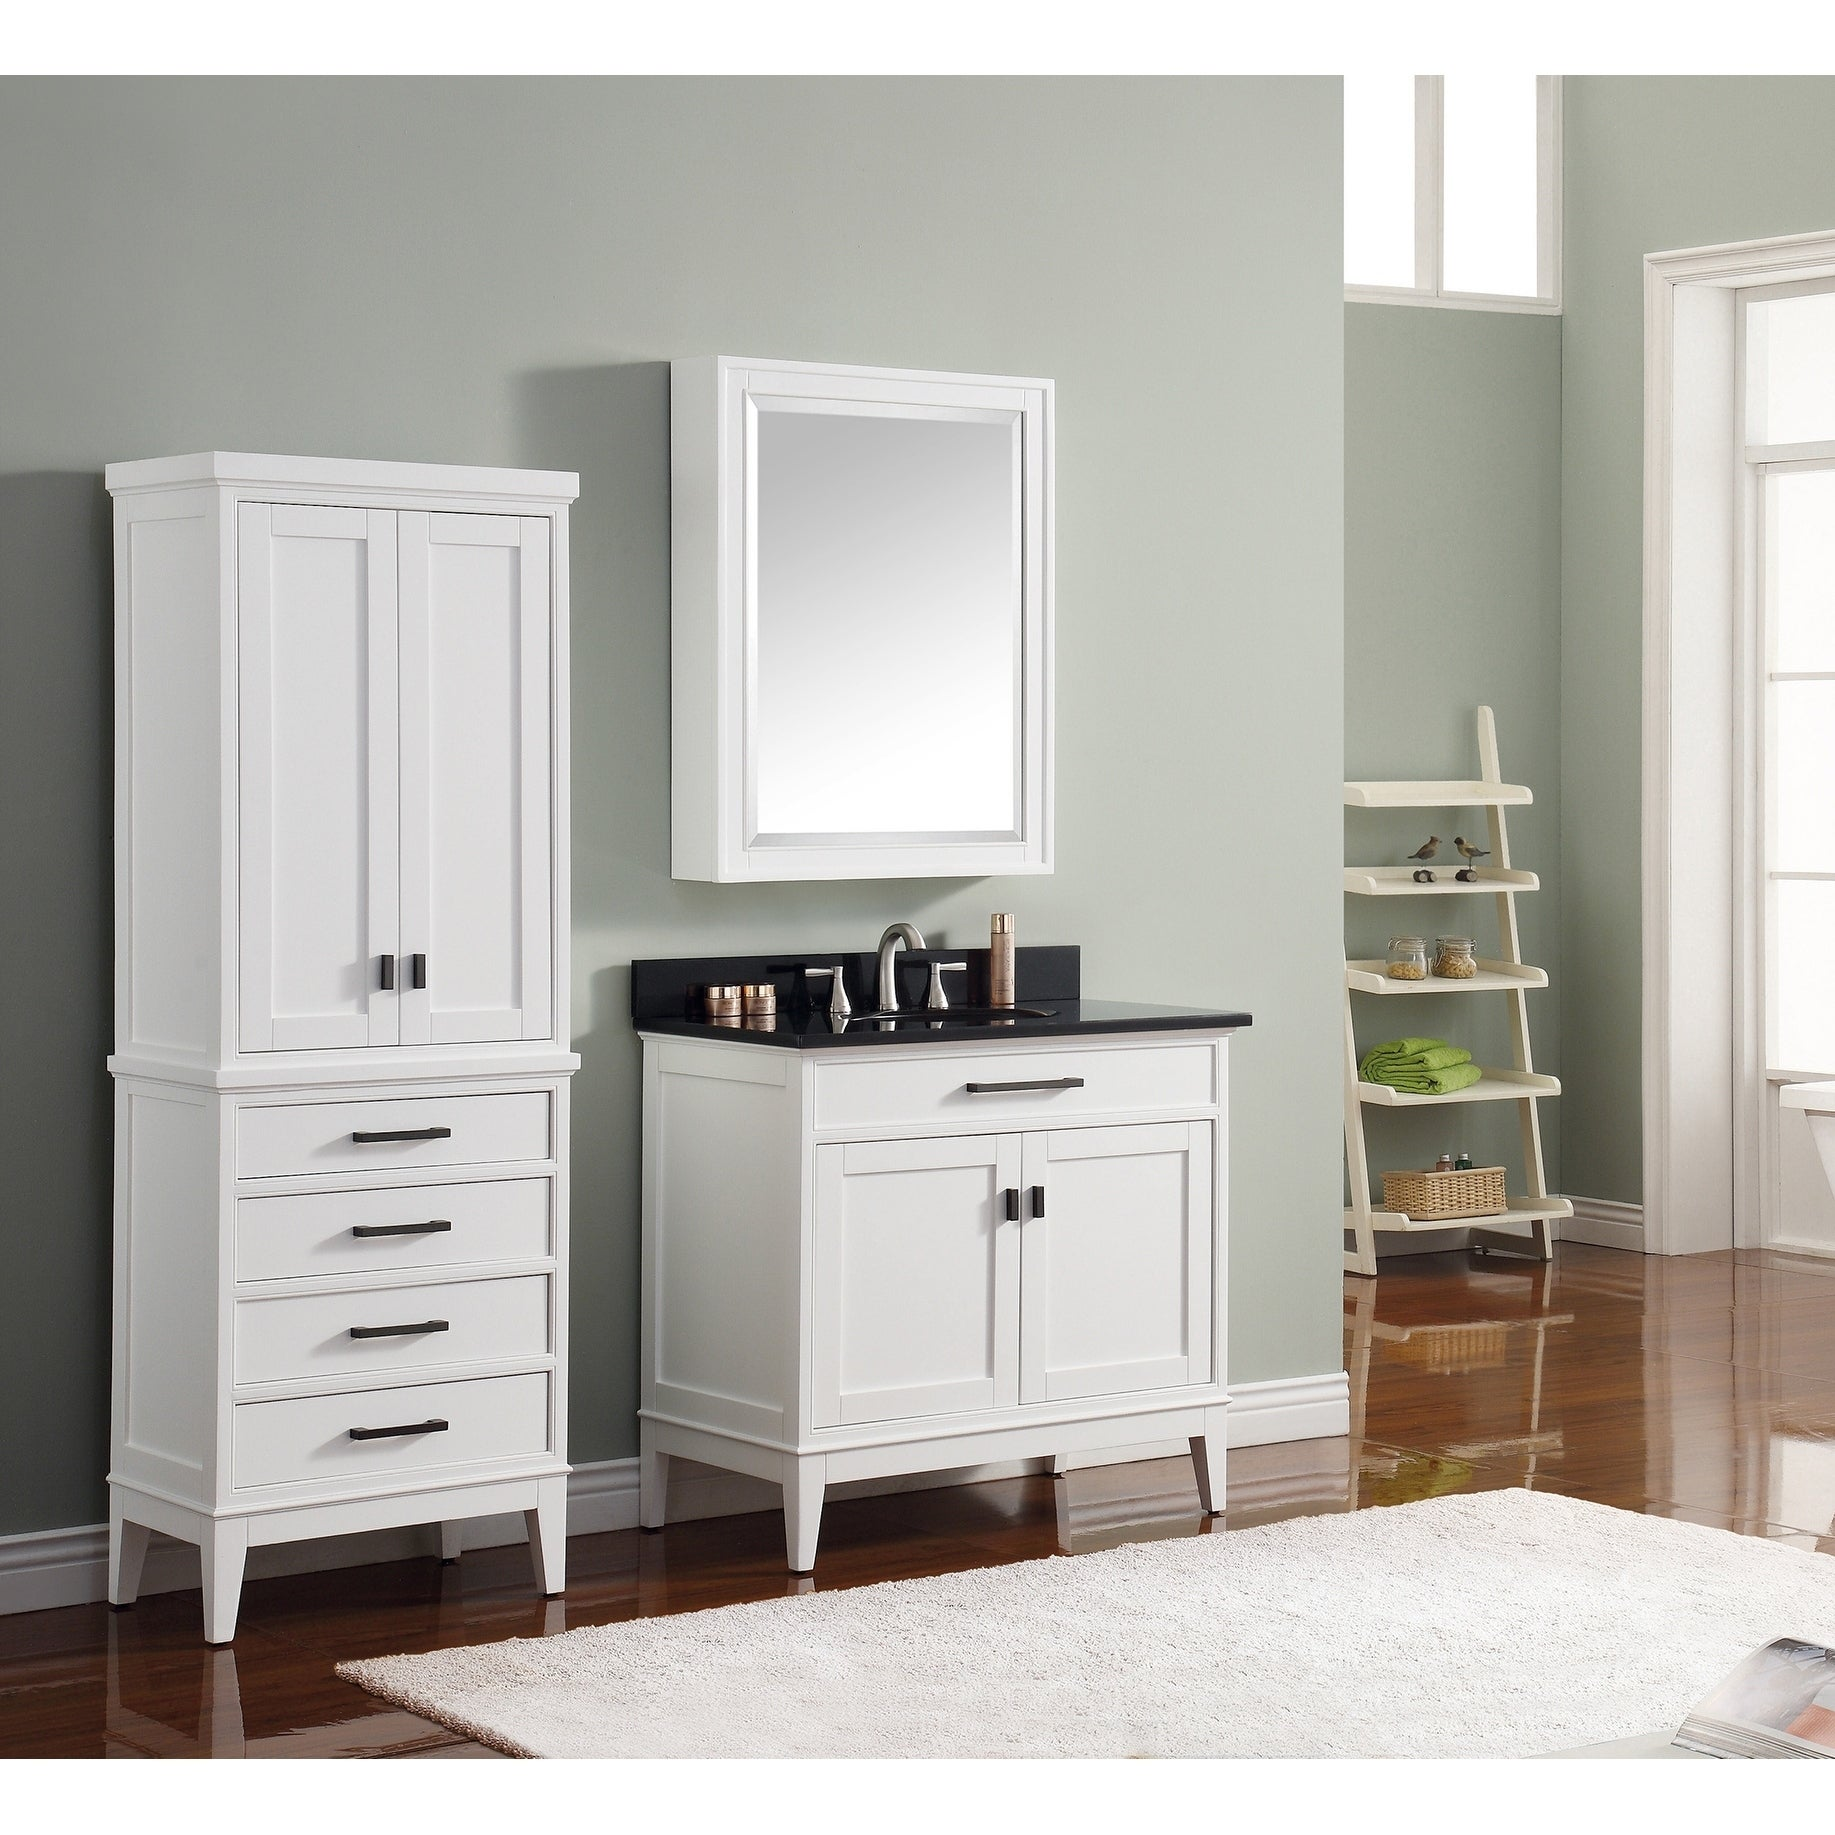 Avanity Madison 24 Inch Mirror Cabinet In White W X 32 H Free Shipping Today 10951022